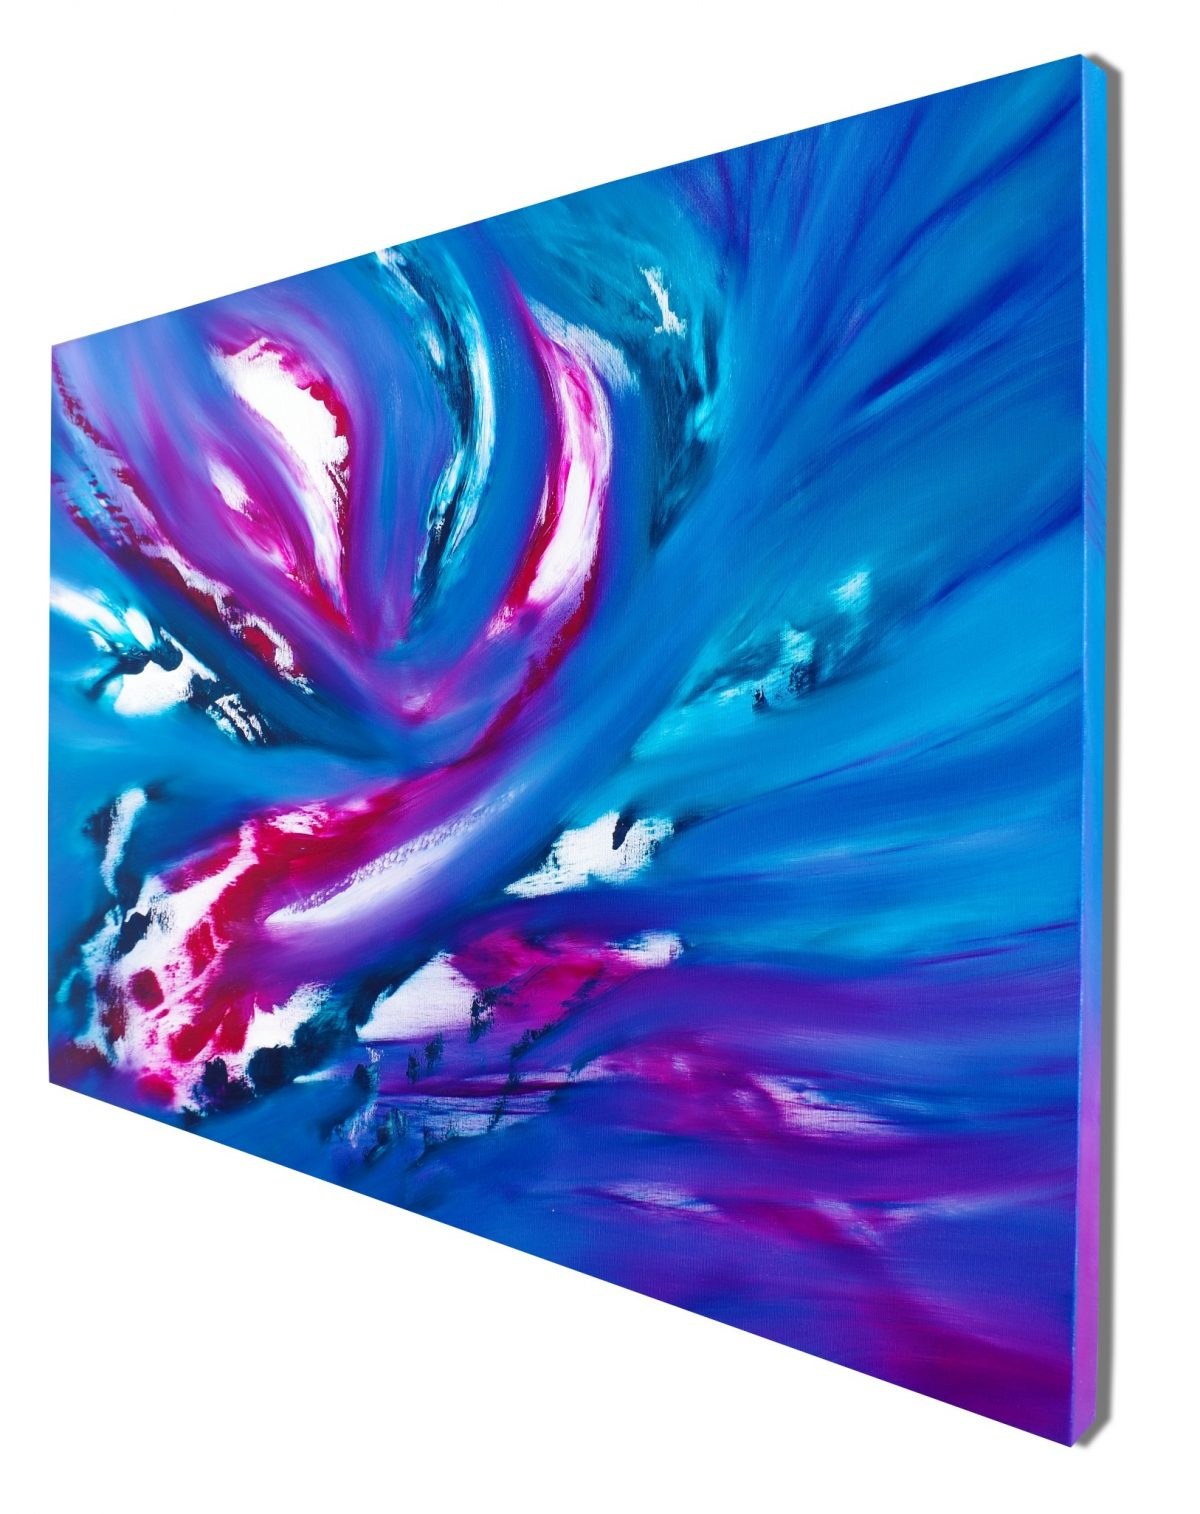 Blue Sky II 100x70 quadro dipinto originale astratto in vendita online